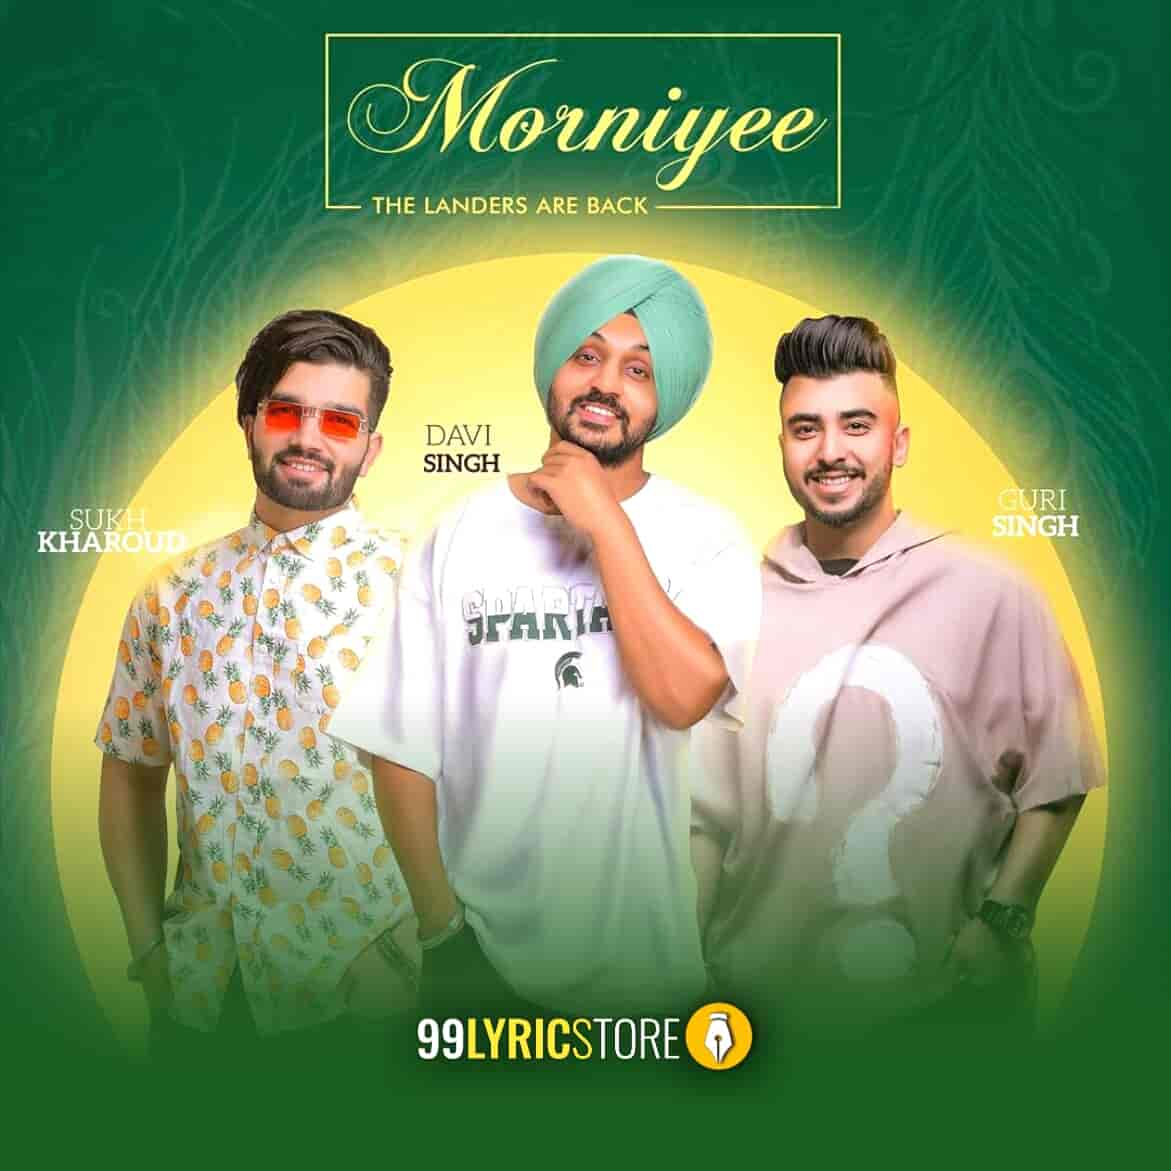 Morniyee Punjabi Song sung by Davi (The Landers)